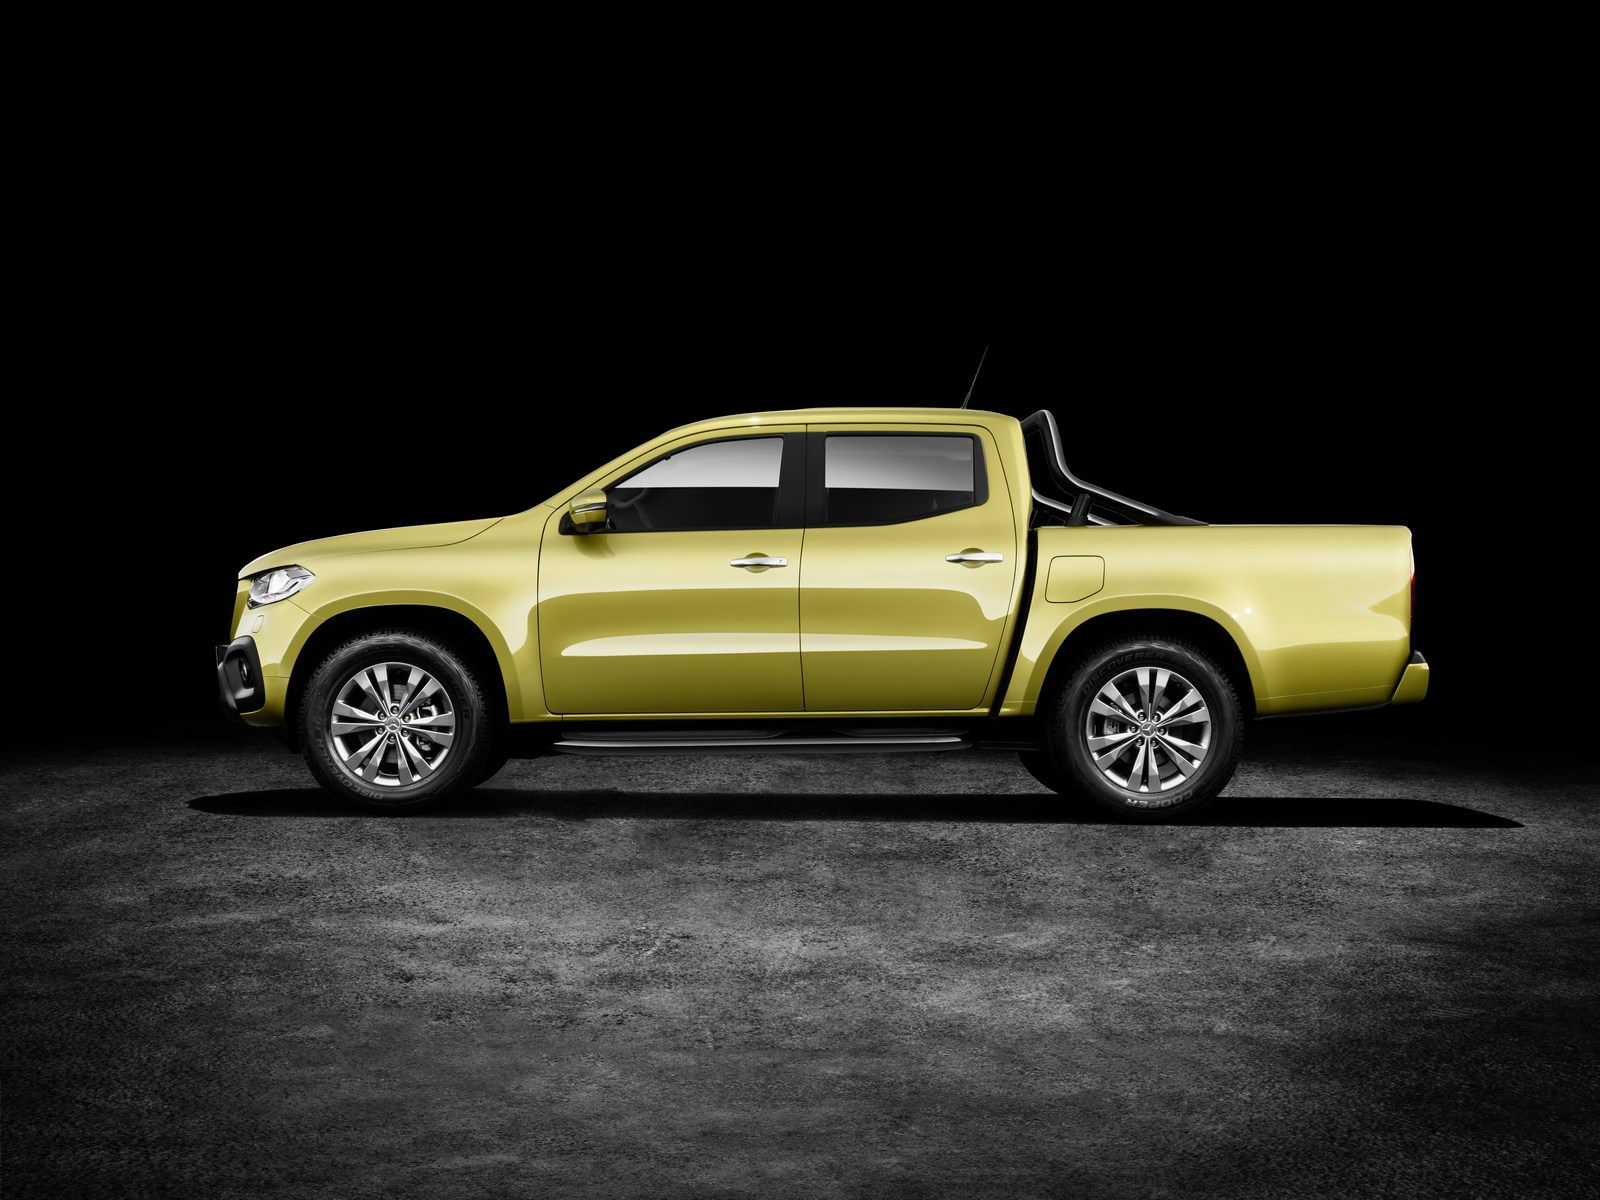 Mercedes-Benz X-Klasse – Exterieur, Limonitgelb metallic, Ausstattungslinie PROGRESSIVE, Side Bar und Styling Bar (Mercedes-Benz Zubehör)   Mercedes-Benz X-Class – Exterior, limonite yellow metallic, design and equipment line PROGRESSIVE, side bar and styling bar (Mercedes-Benz accessories)